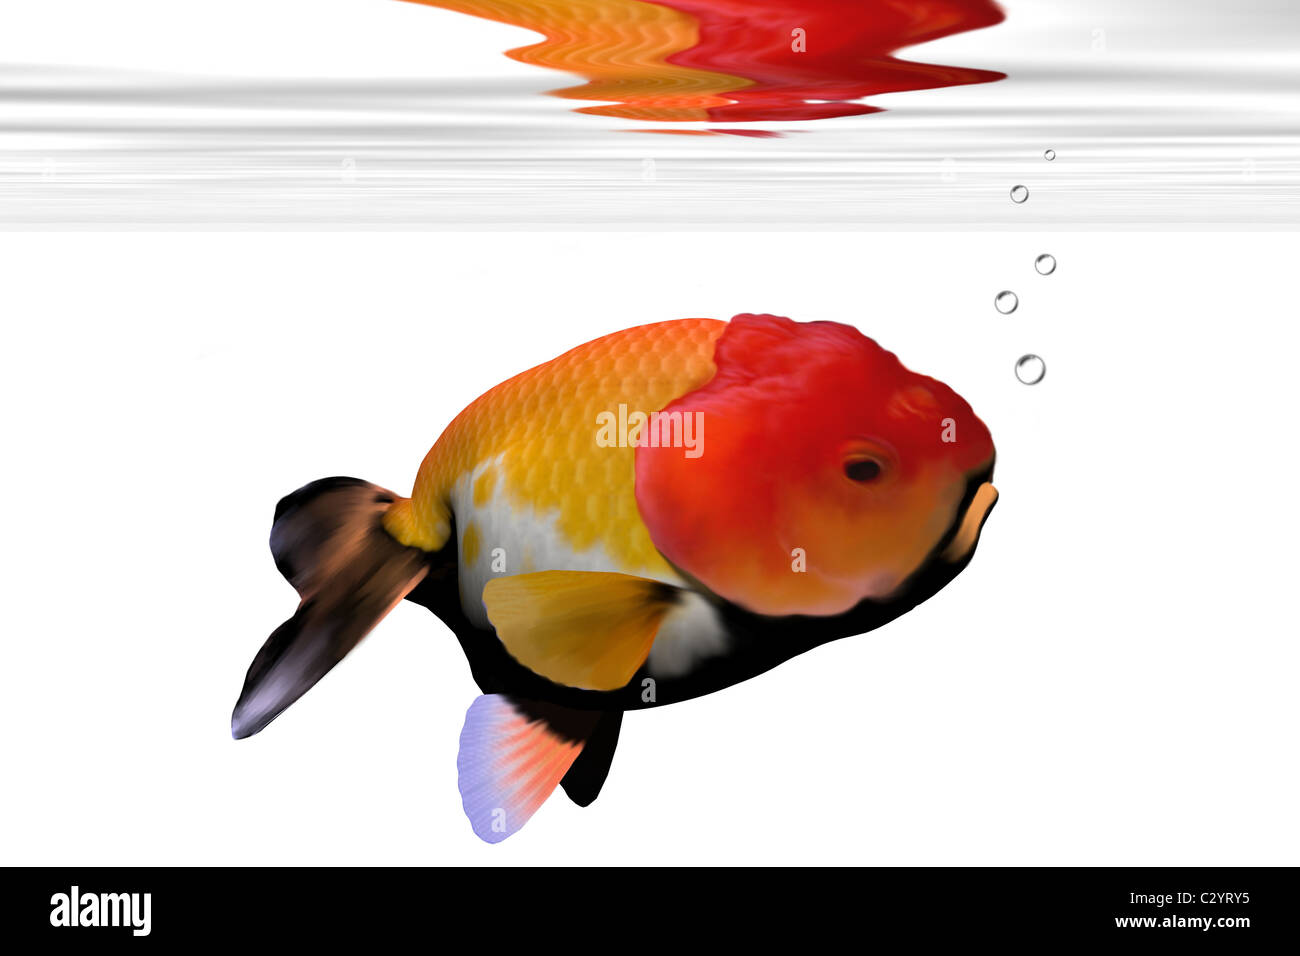 Goldfish Face Stock Photos & Goldfish Face Stock Images - Alamy